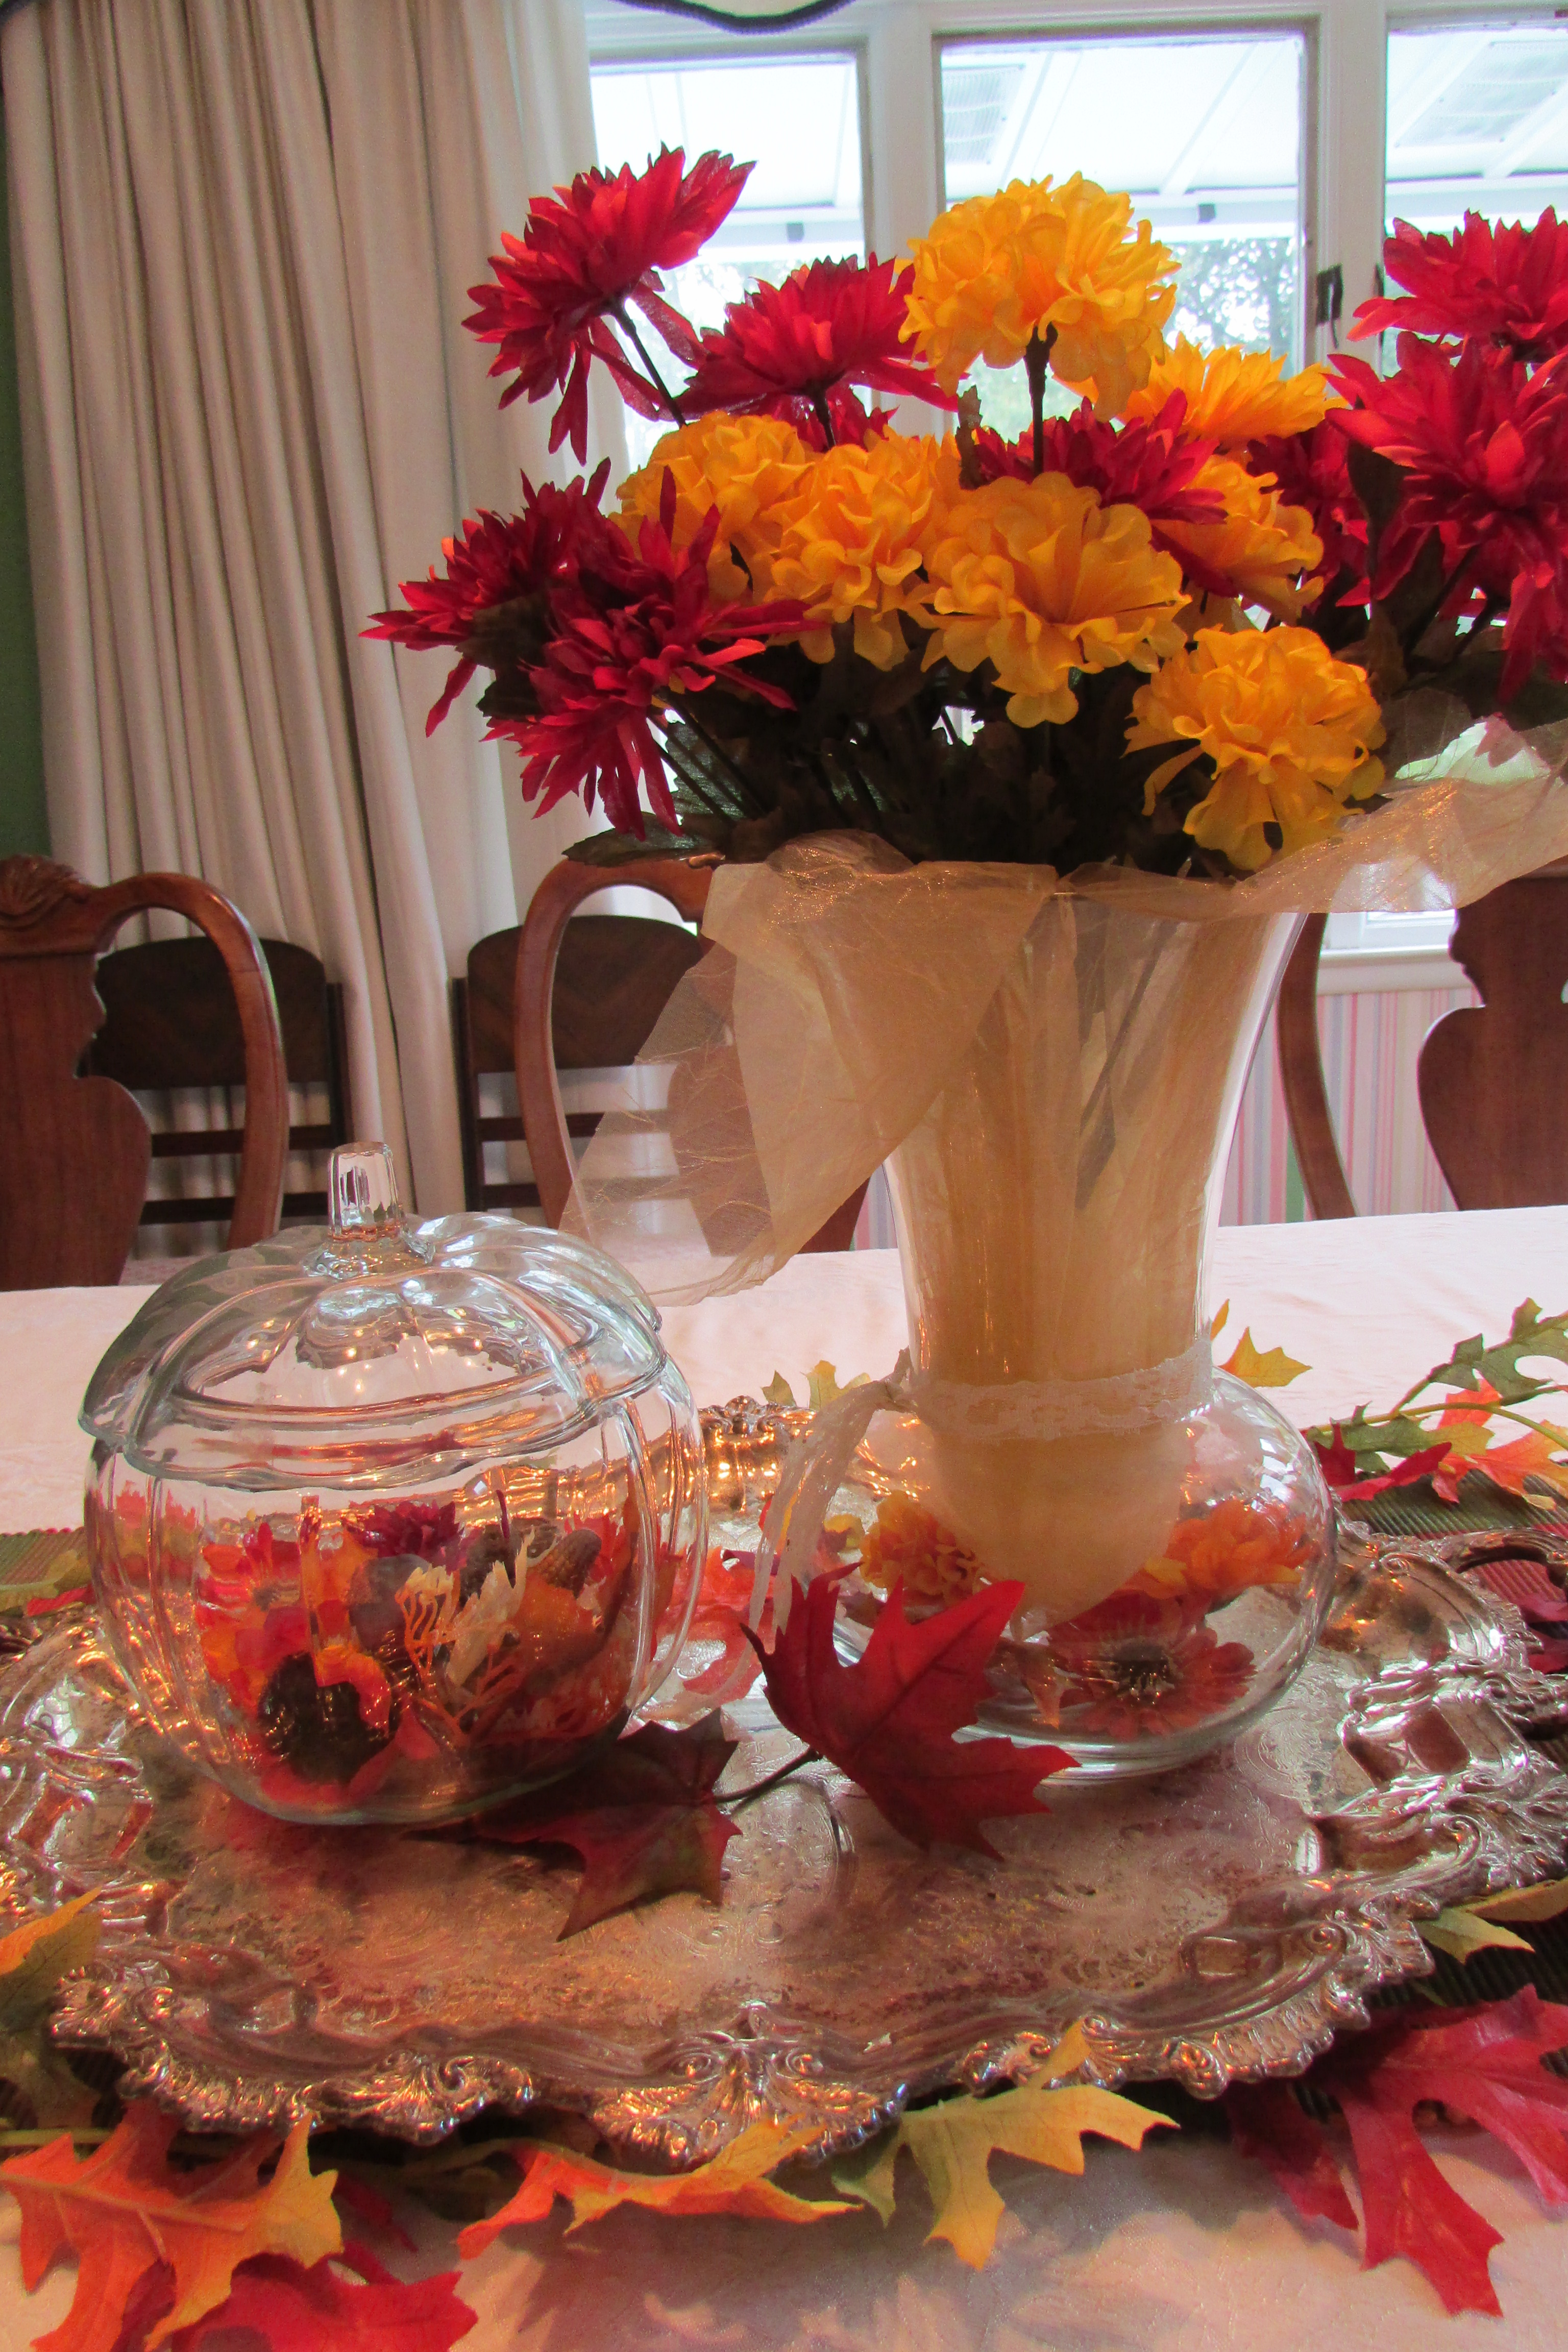 Decorating The House For Fall With Easy To Make Silk Flower Arrangements Fred Gonsowski Garden